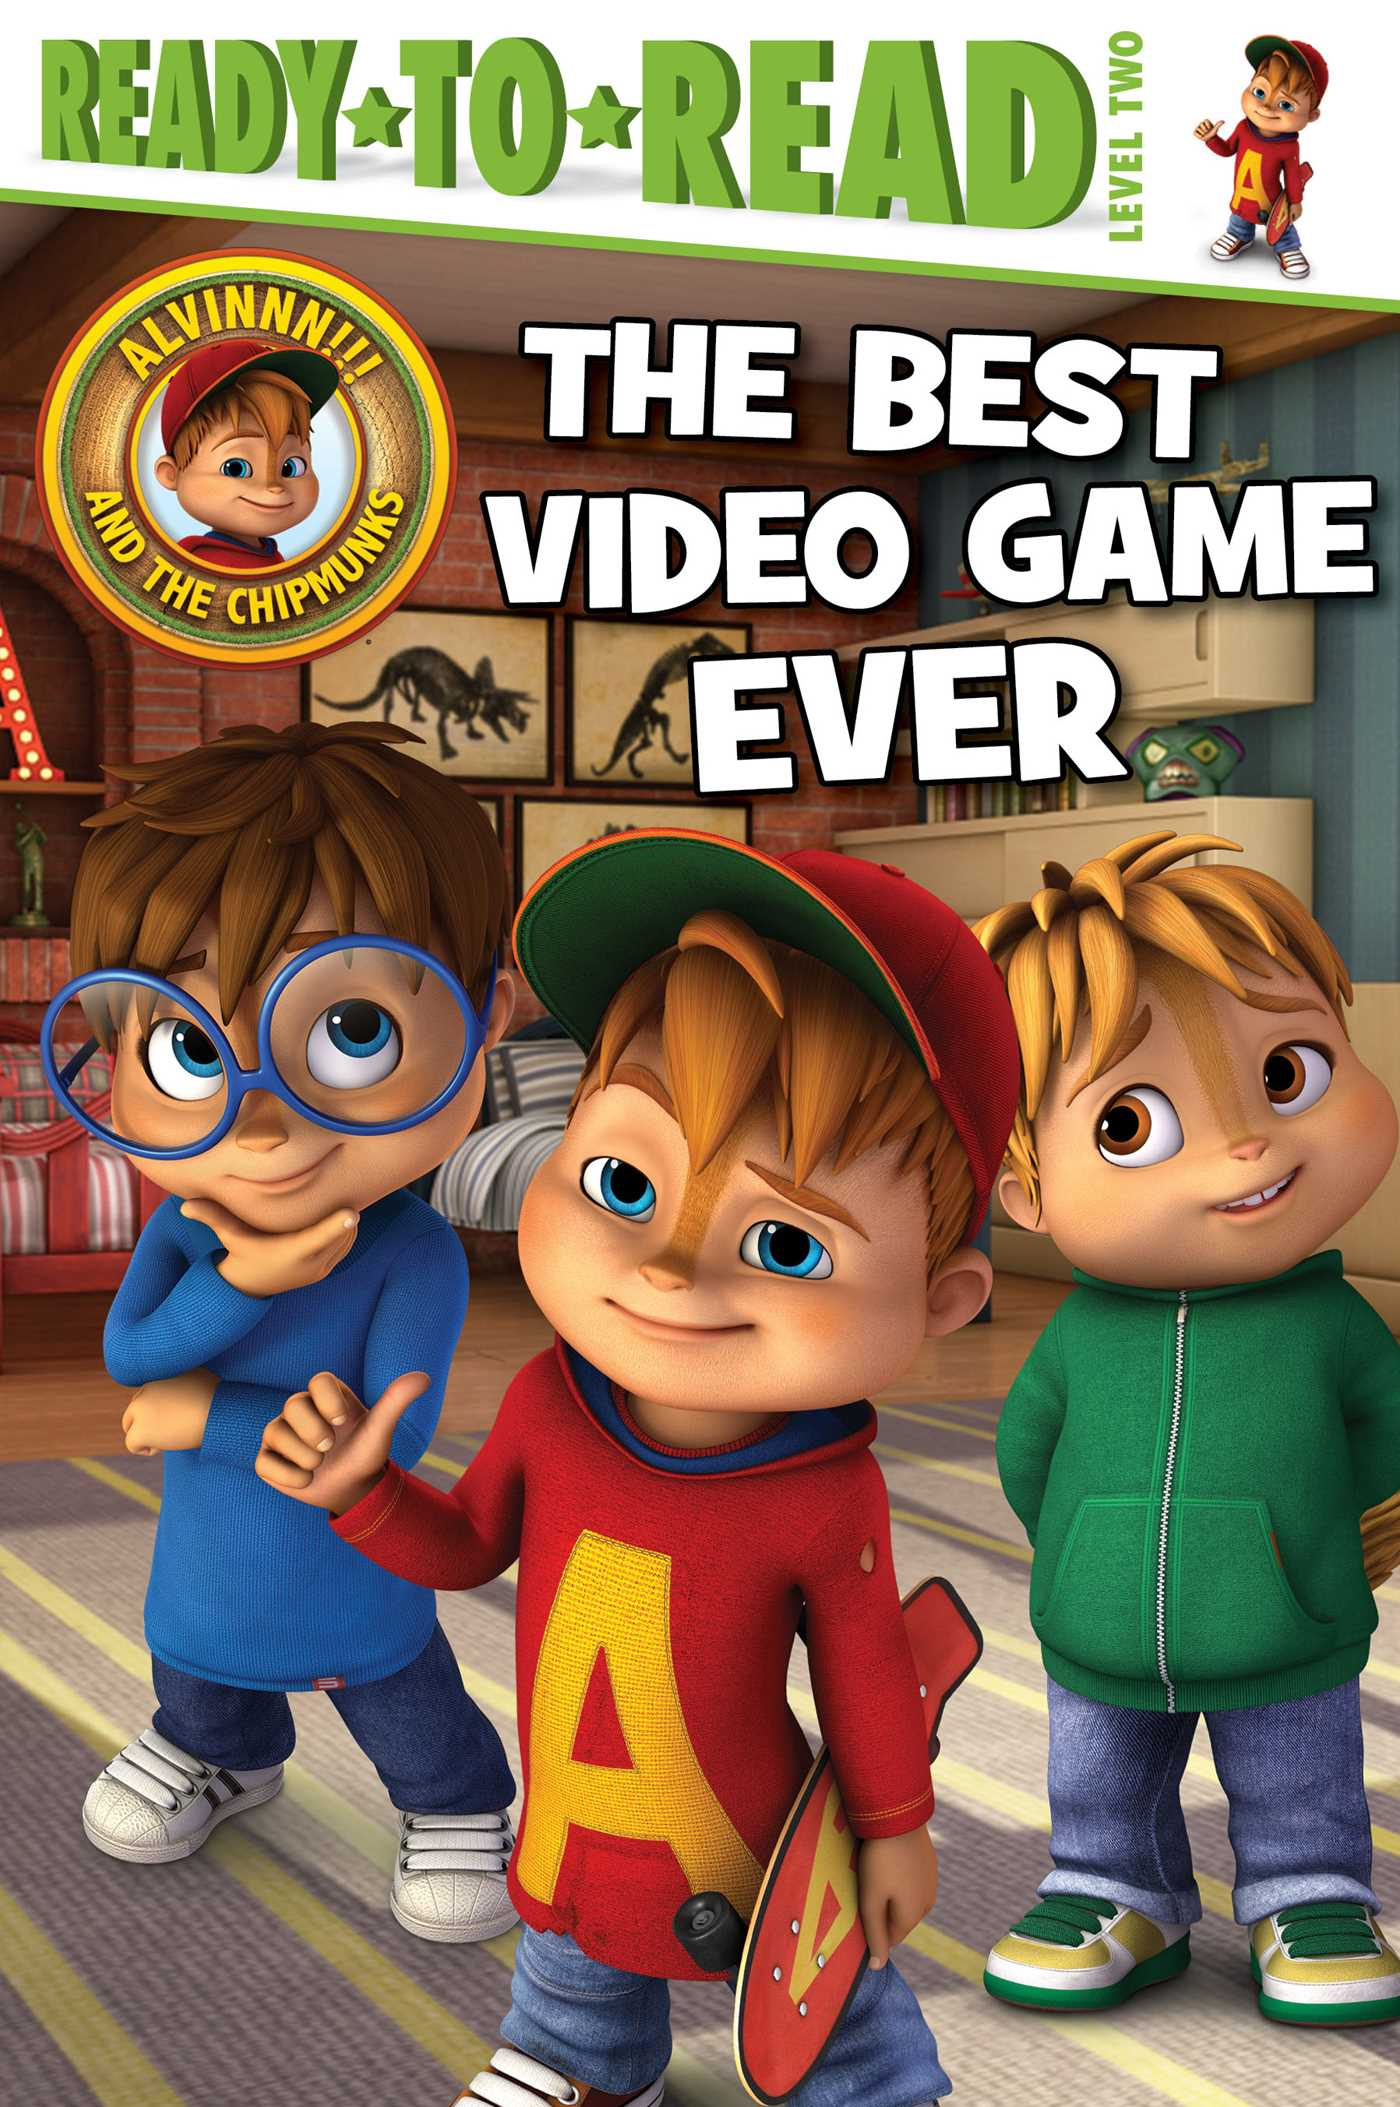 The best video game ever 9781534400474 hr